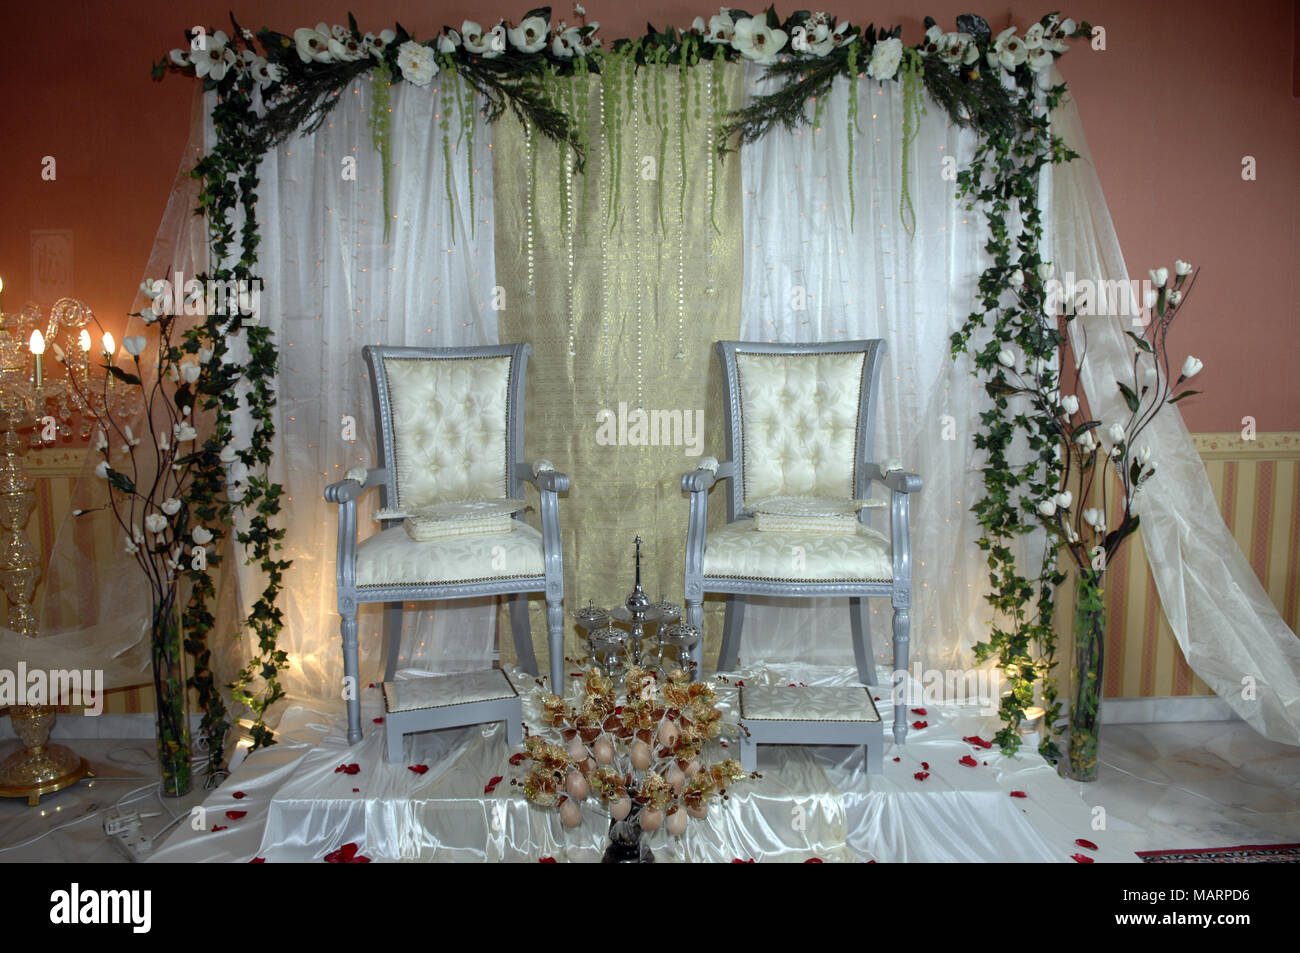 Malay Wedding Decoration High Resolution Stock Photography and Images -  Alamy